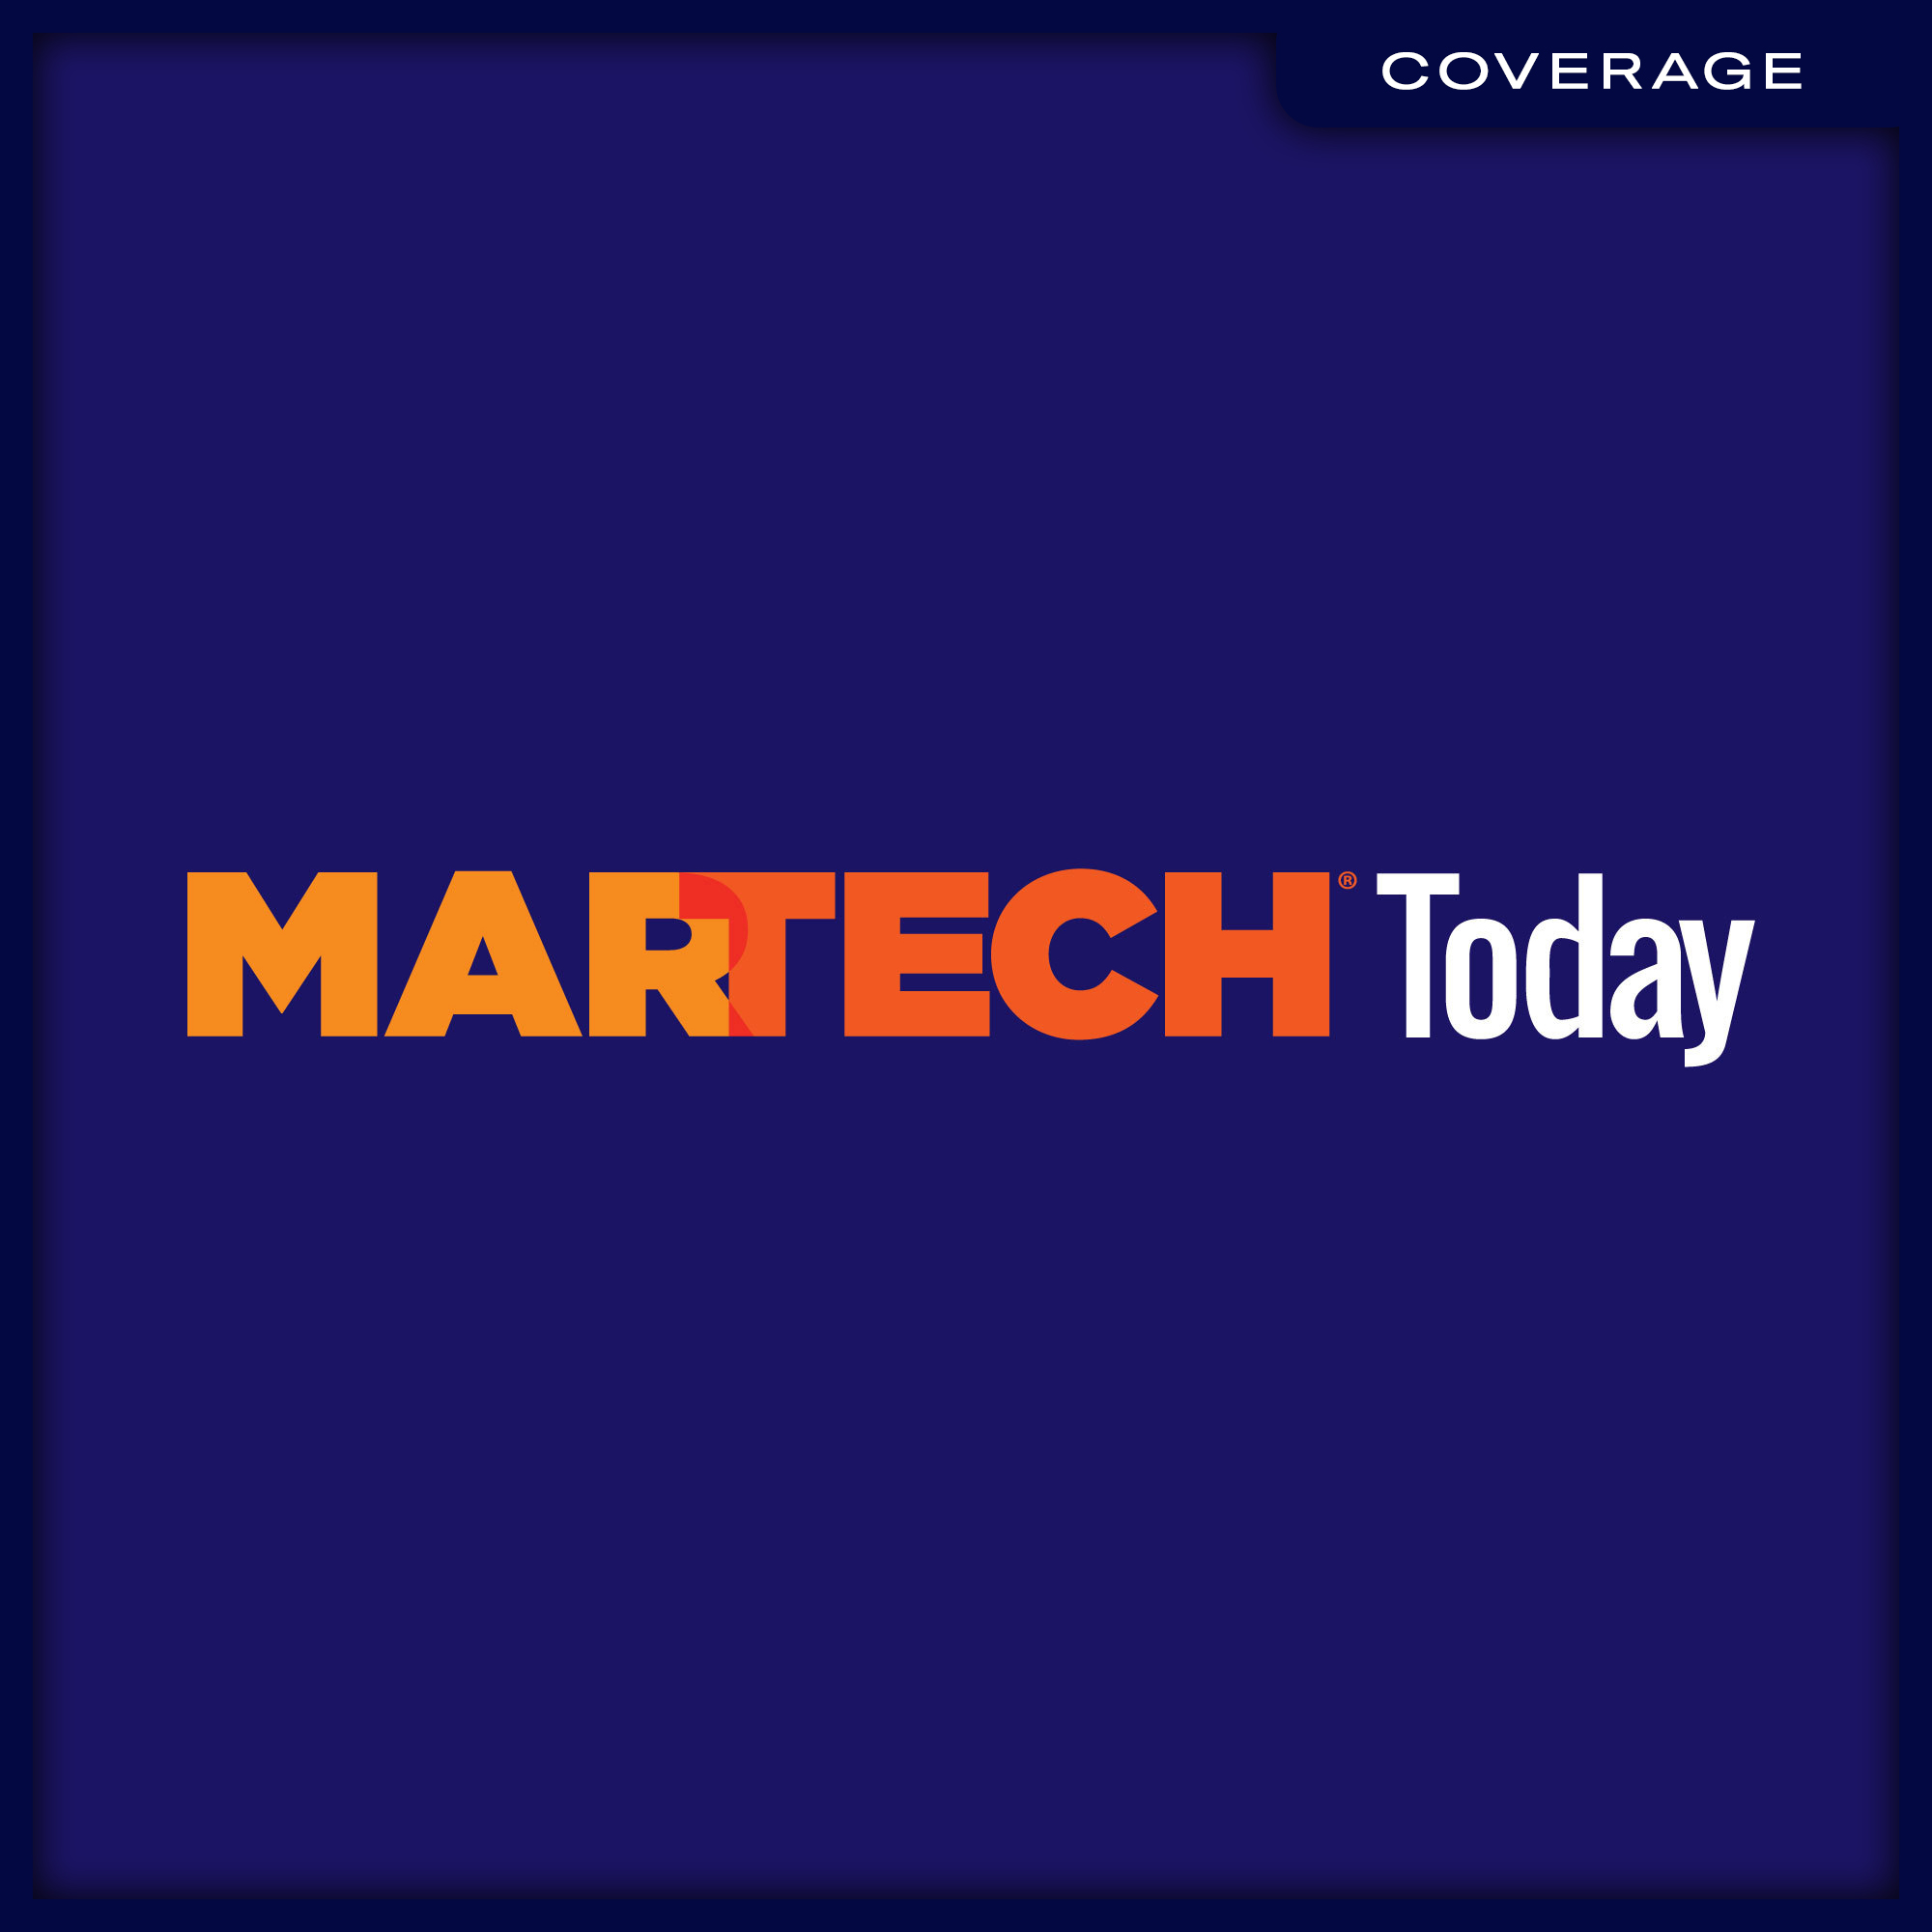 01_Coverage_martech-today-logo